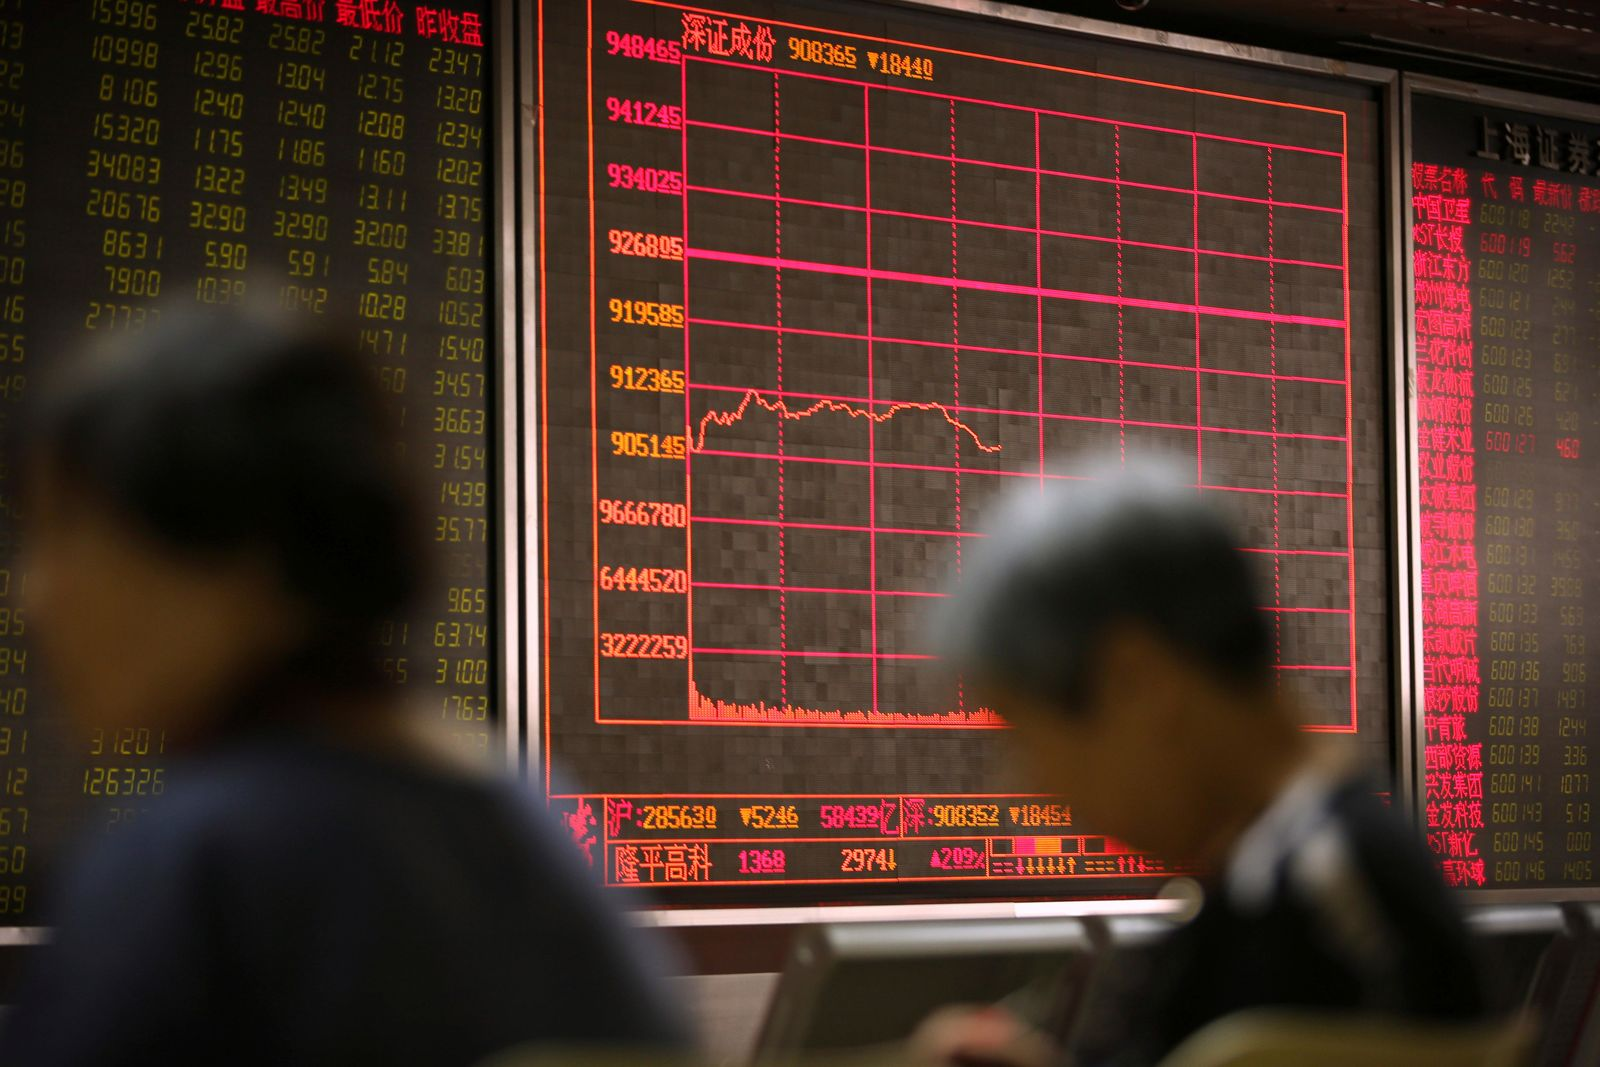 Chinese investors monitor stock prices at a brokerage house in Beijing, Friday, Aug. 2, 2019. (AP Photo/Mark Schiefelbein)